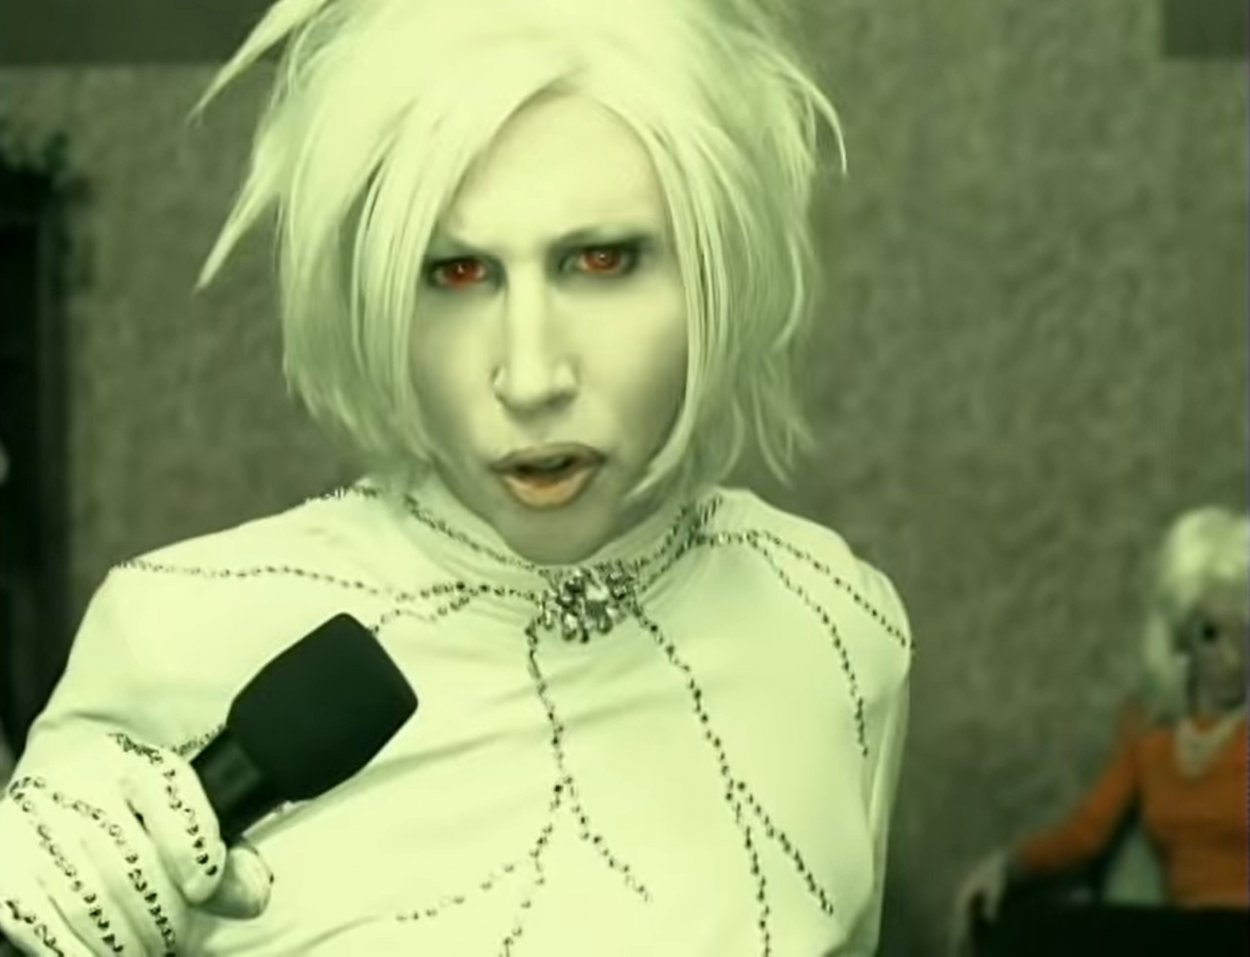 """Marilyn Manson singing in the """"I Don't Like the Drugs (But the Drugs Like Me)"""" music video"""